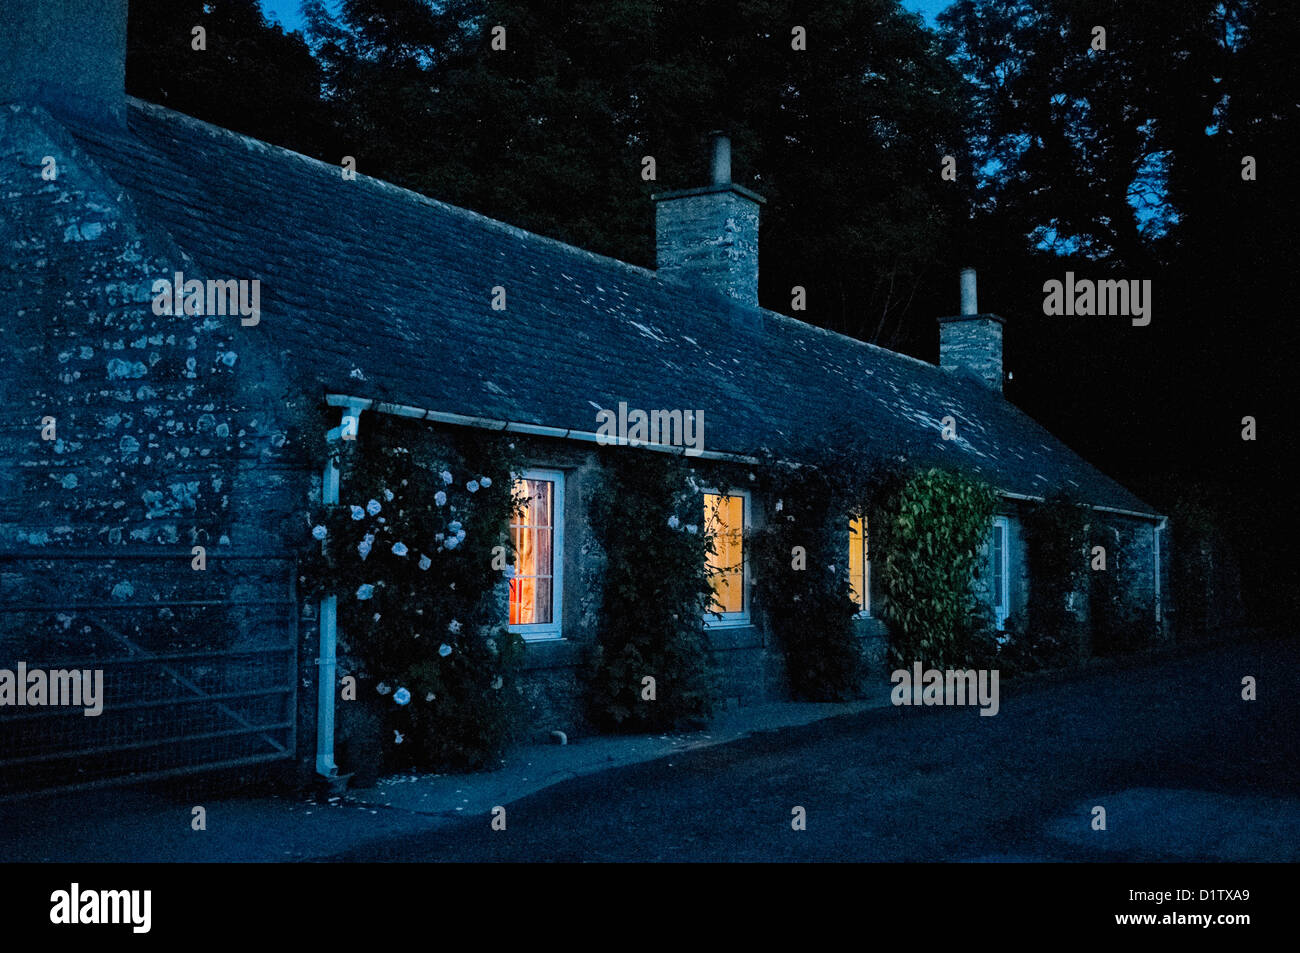 Old stone cottage at night, with light shining from windows. - Stock Image